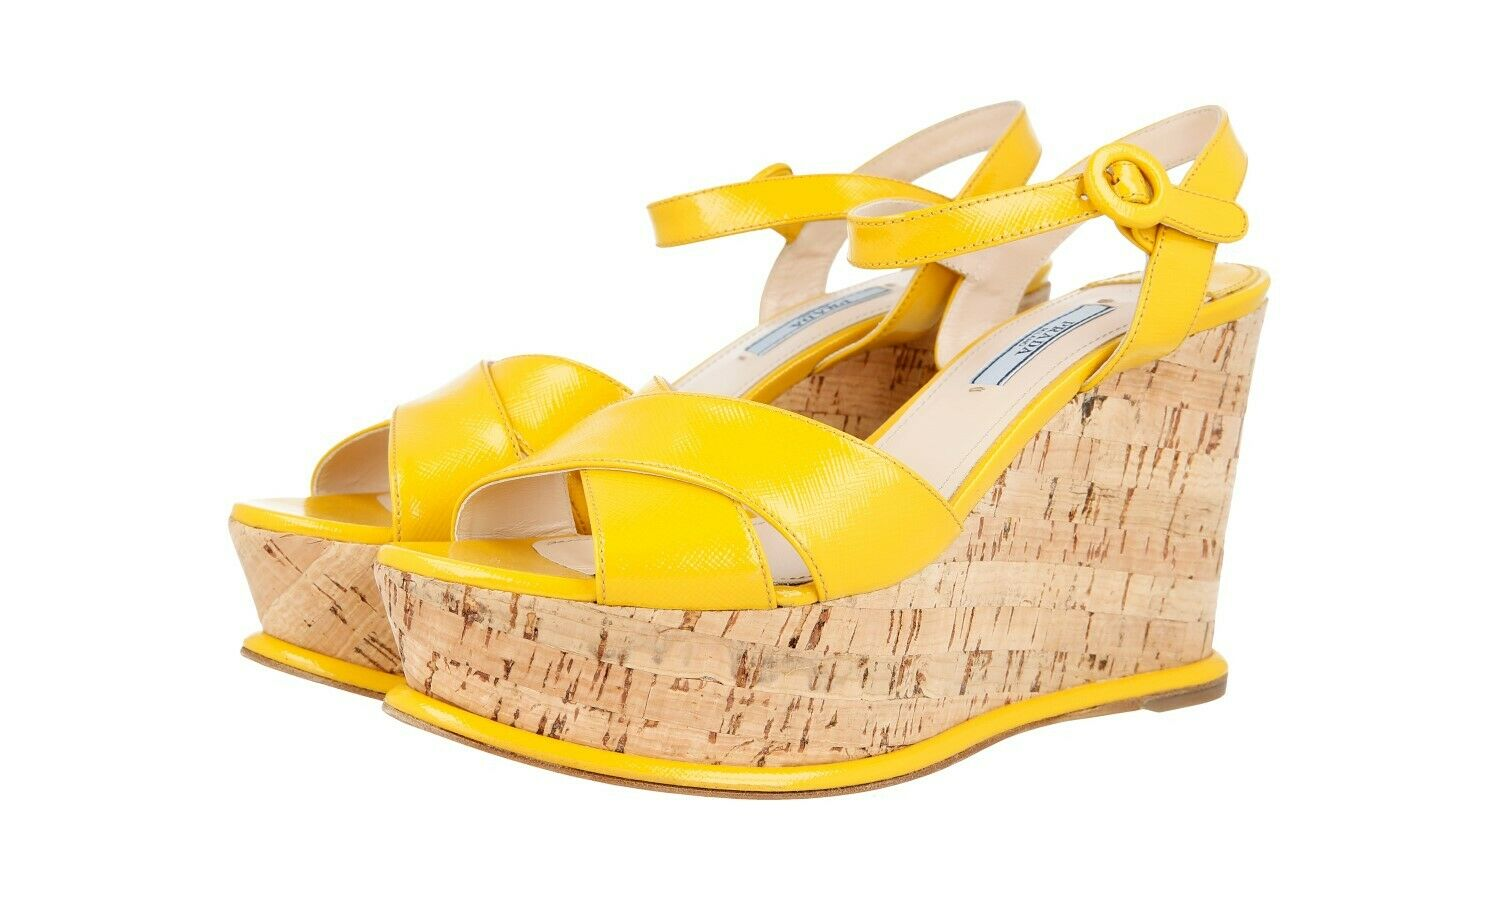 Luxury PRADA Safffano Wedge Platform Sandals scarpe  1XZ265 giallo NEW 40,5 UK 7  online al miglior prezzo